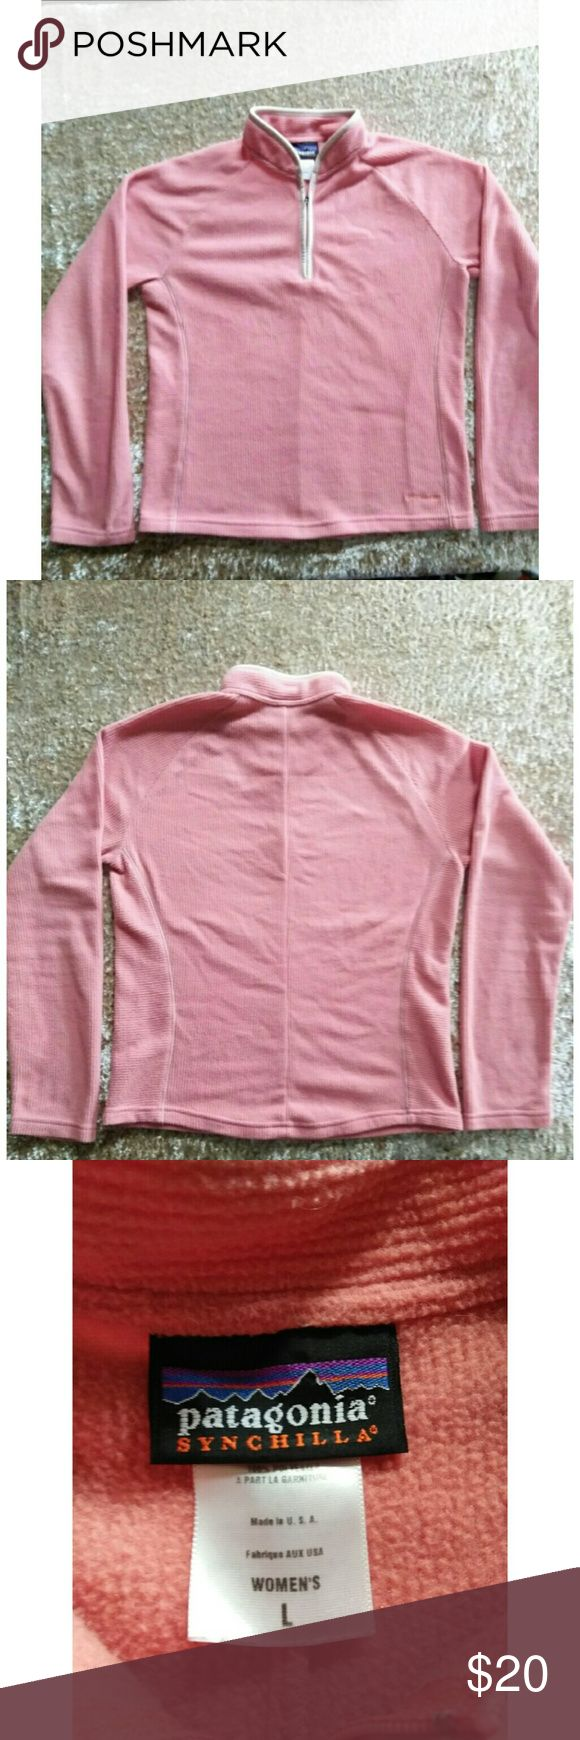 Patagonia Lightweight Pullover  Large Salmon Cute This Patagonia Pullover top is just the right weight for those cool summer nights.  It has contrasting trim and the Patagonia label is subtly located near the bottom hemline. Patagonia Sweaters